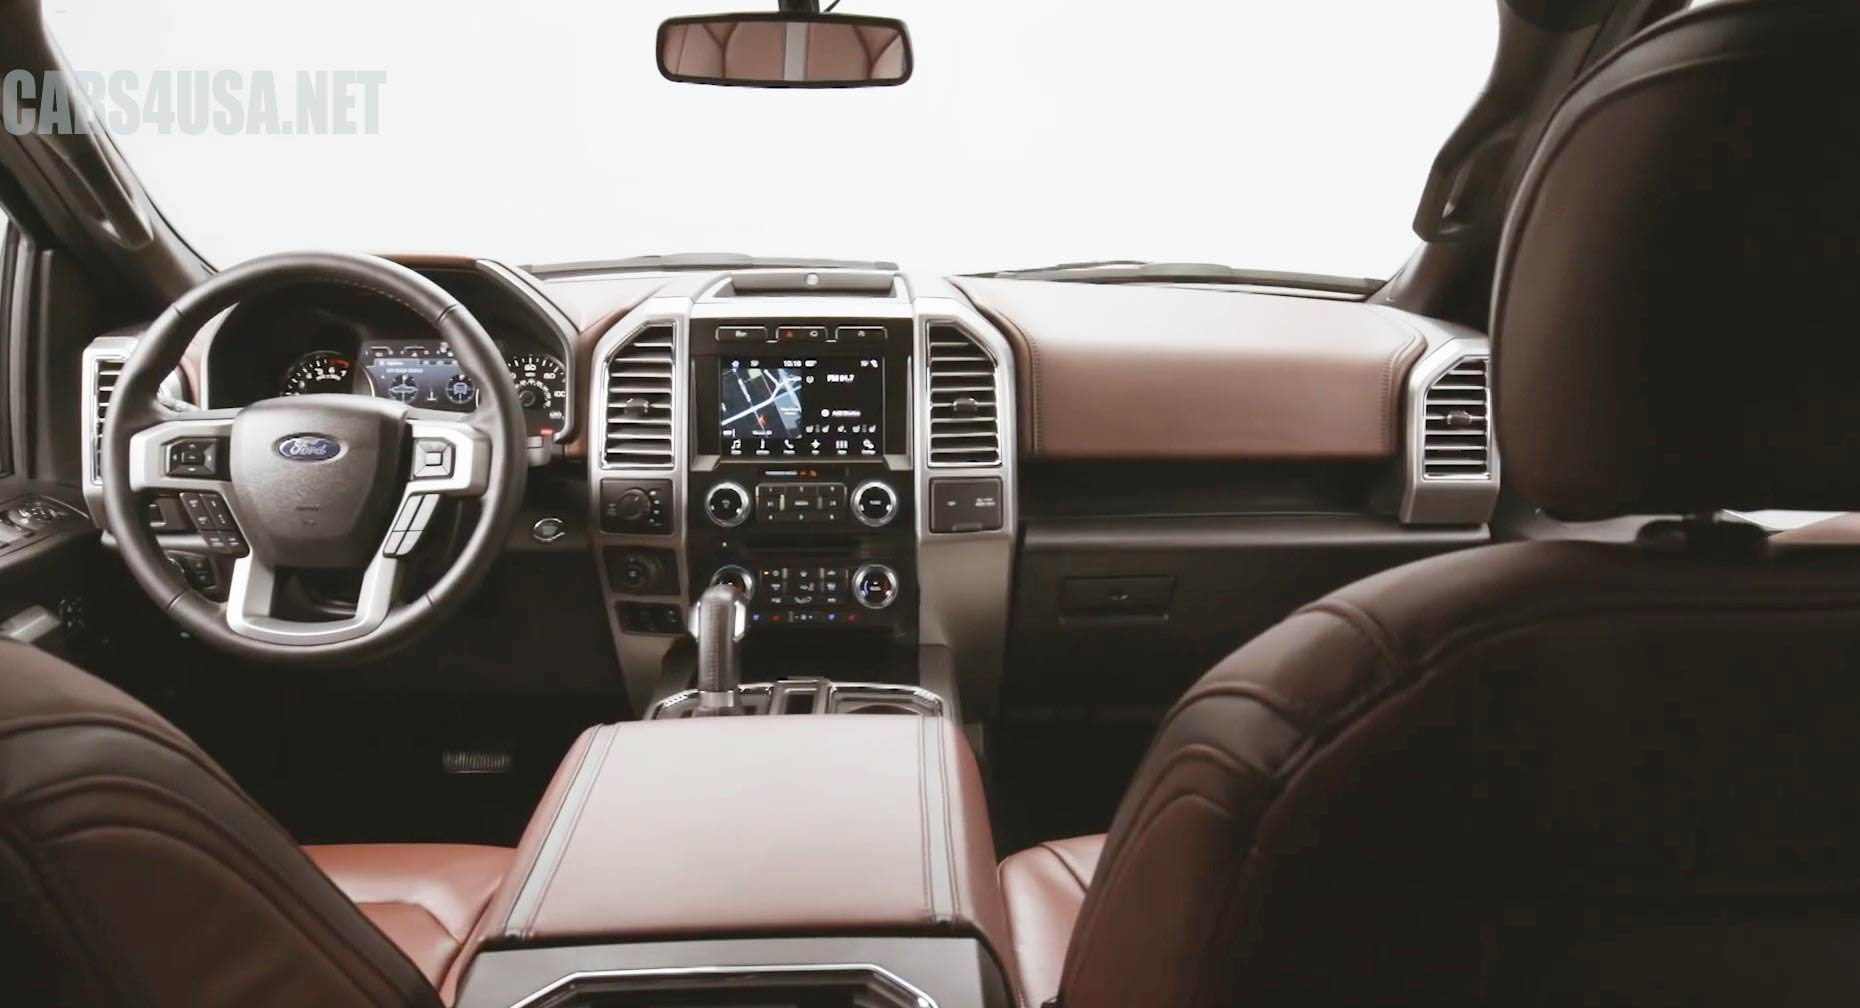 2018 ford king ranch colors.  ford tech wise the f150 will have all latest features like 4g lte wifi hotspot  connecting up to 10 wireless devices a bang u0026 olufsen audio system  inside 2018 ford king ranch colors